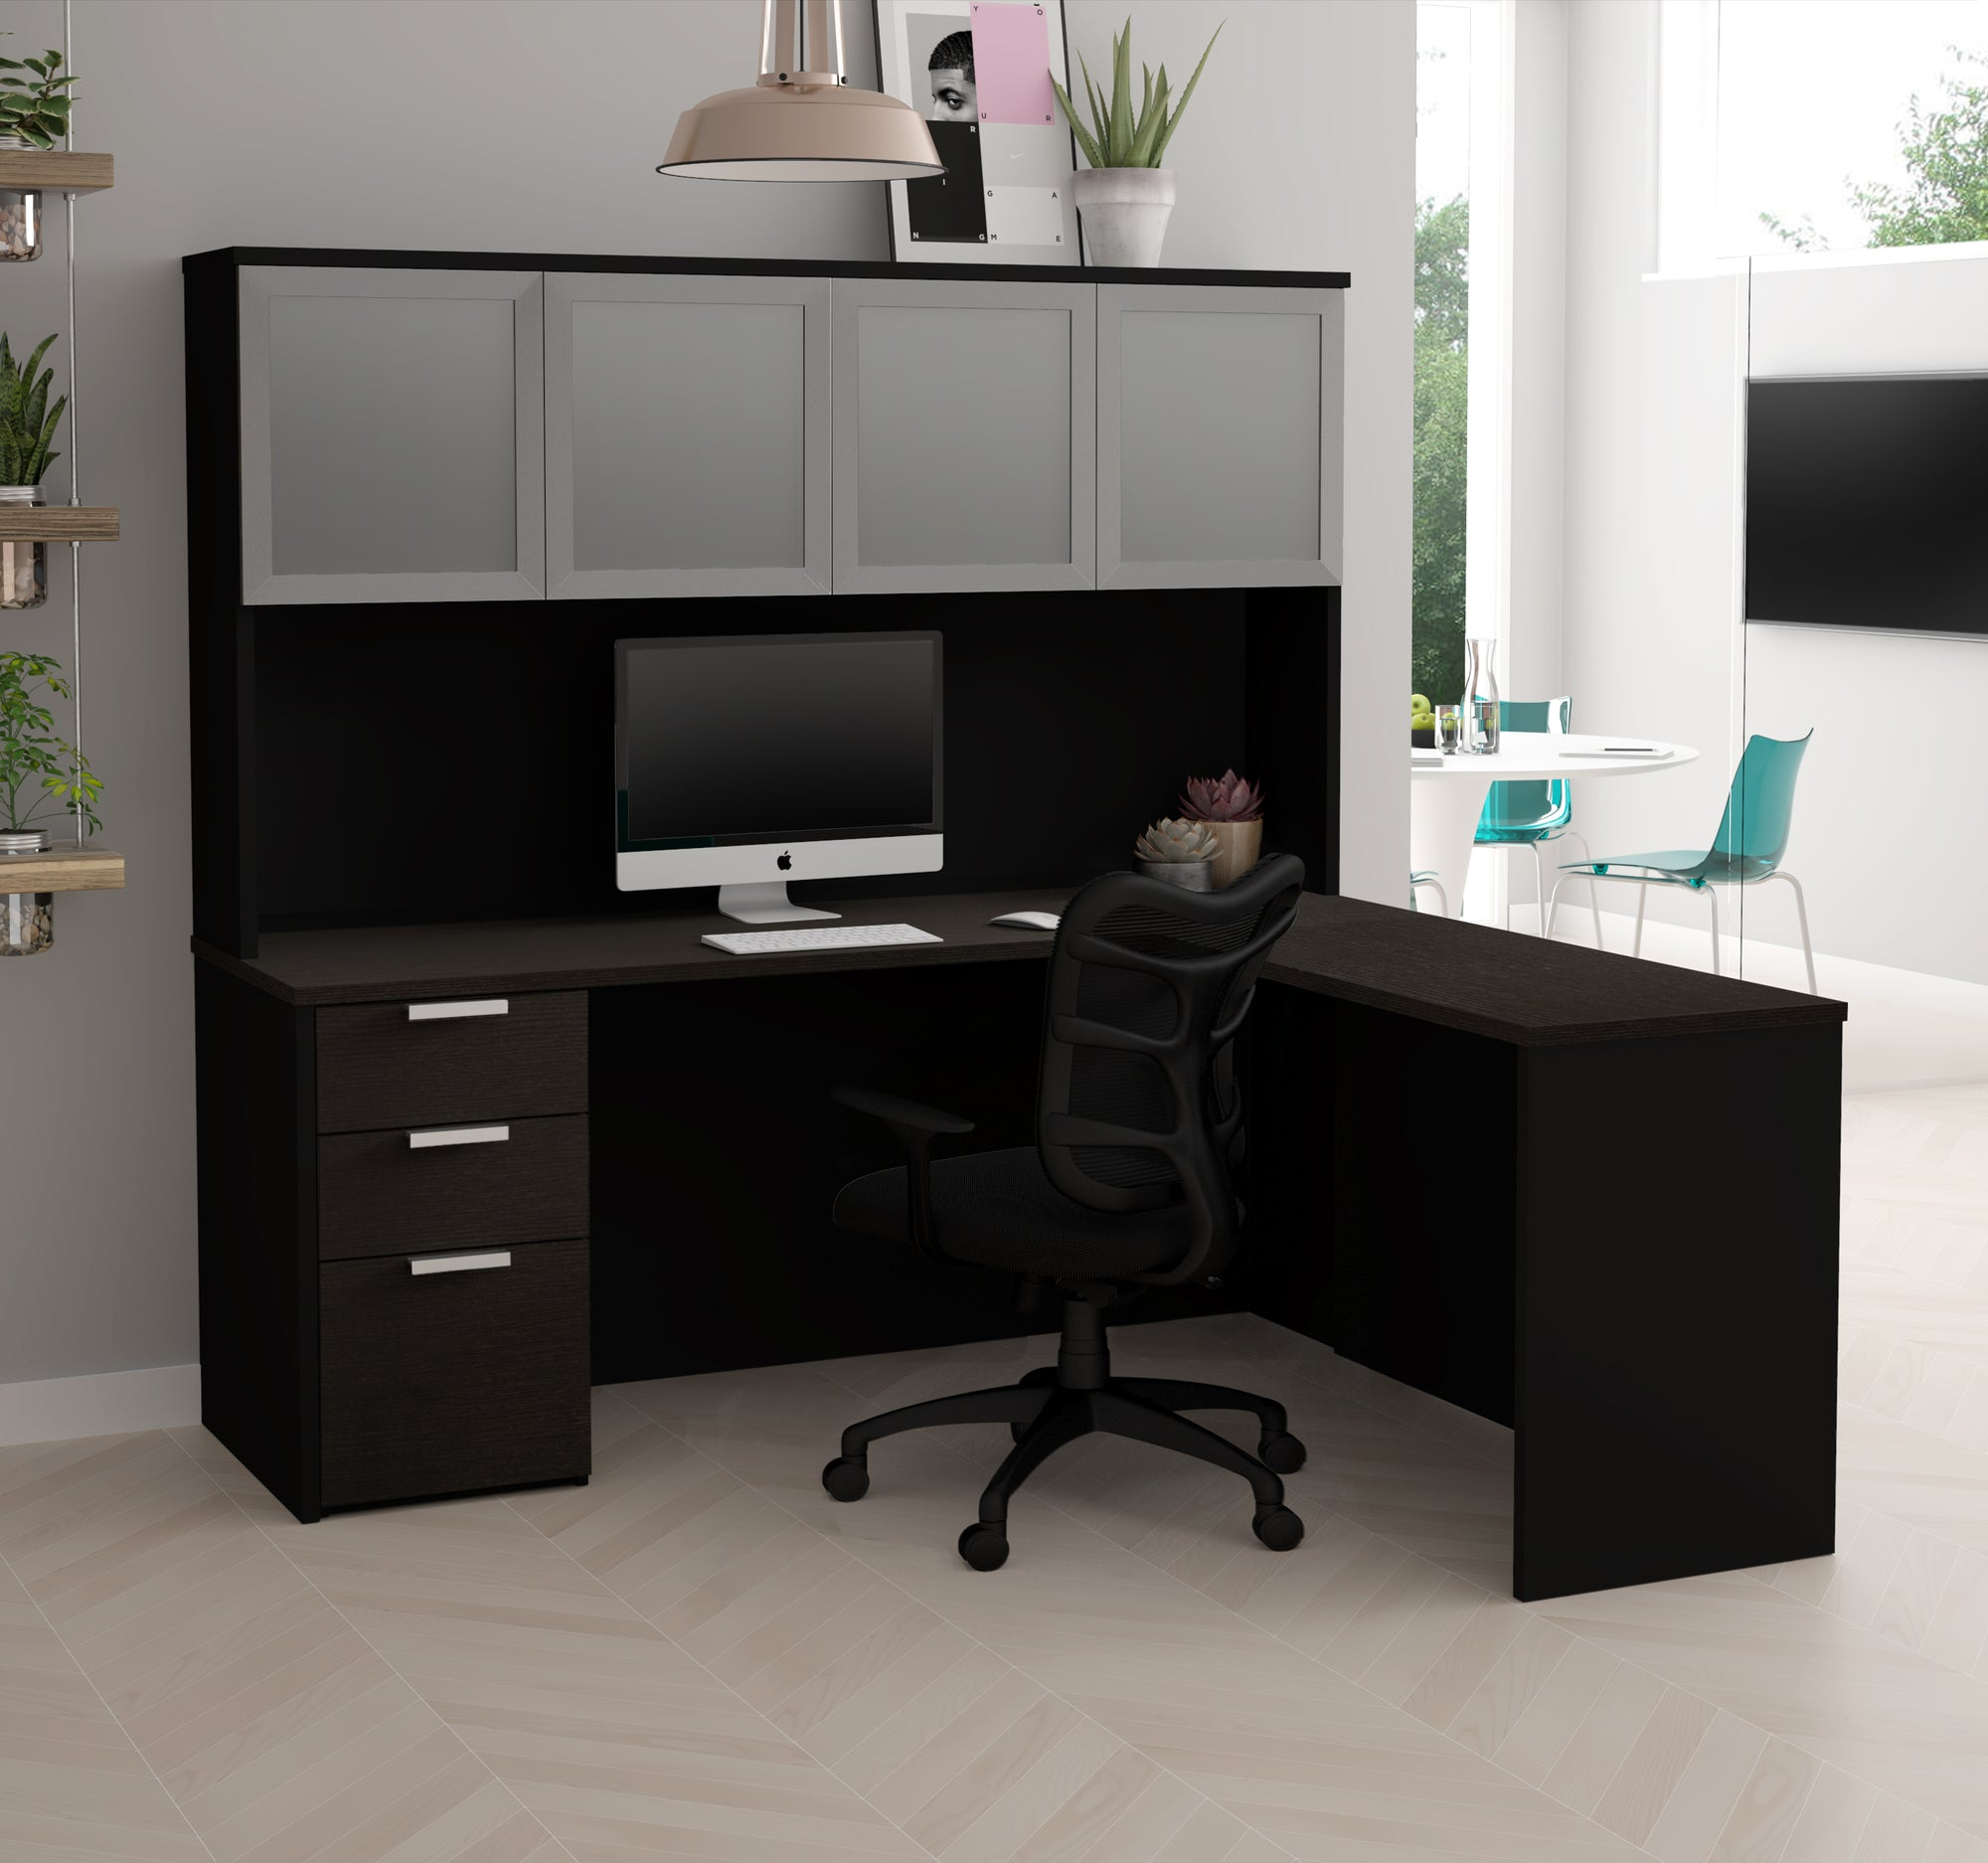 Ordinaire Modern L Shaped Desk U0026 Hutch With Frosted Glass Doors In Deep Gray And Black